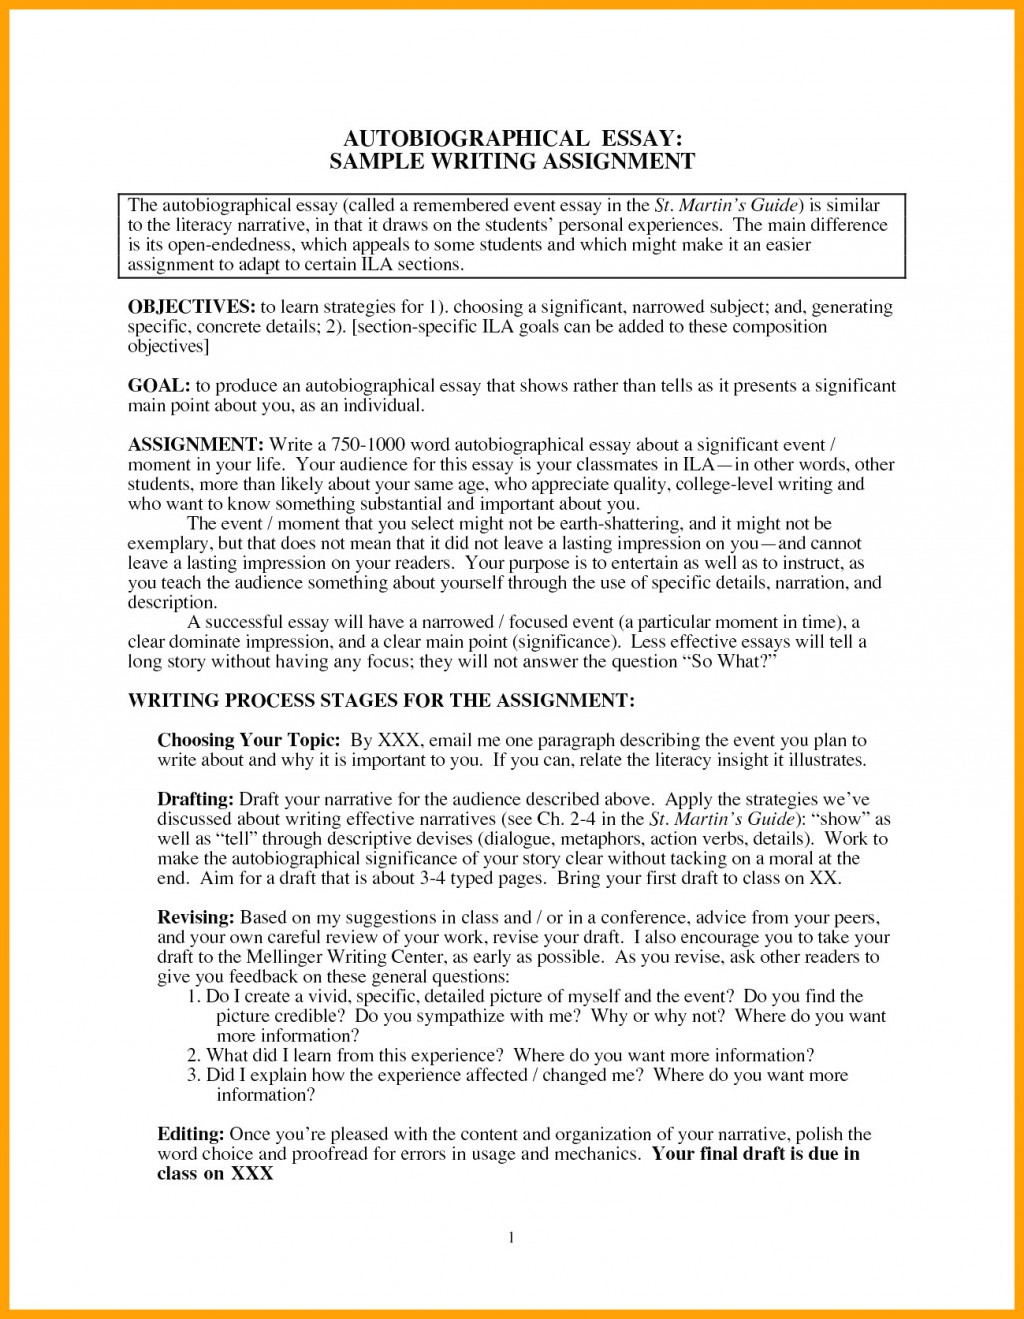 014 Essay Example College Autobiography Autobiographical For Sensational Of About Yourself Tagalog Students Highschool Large